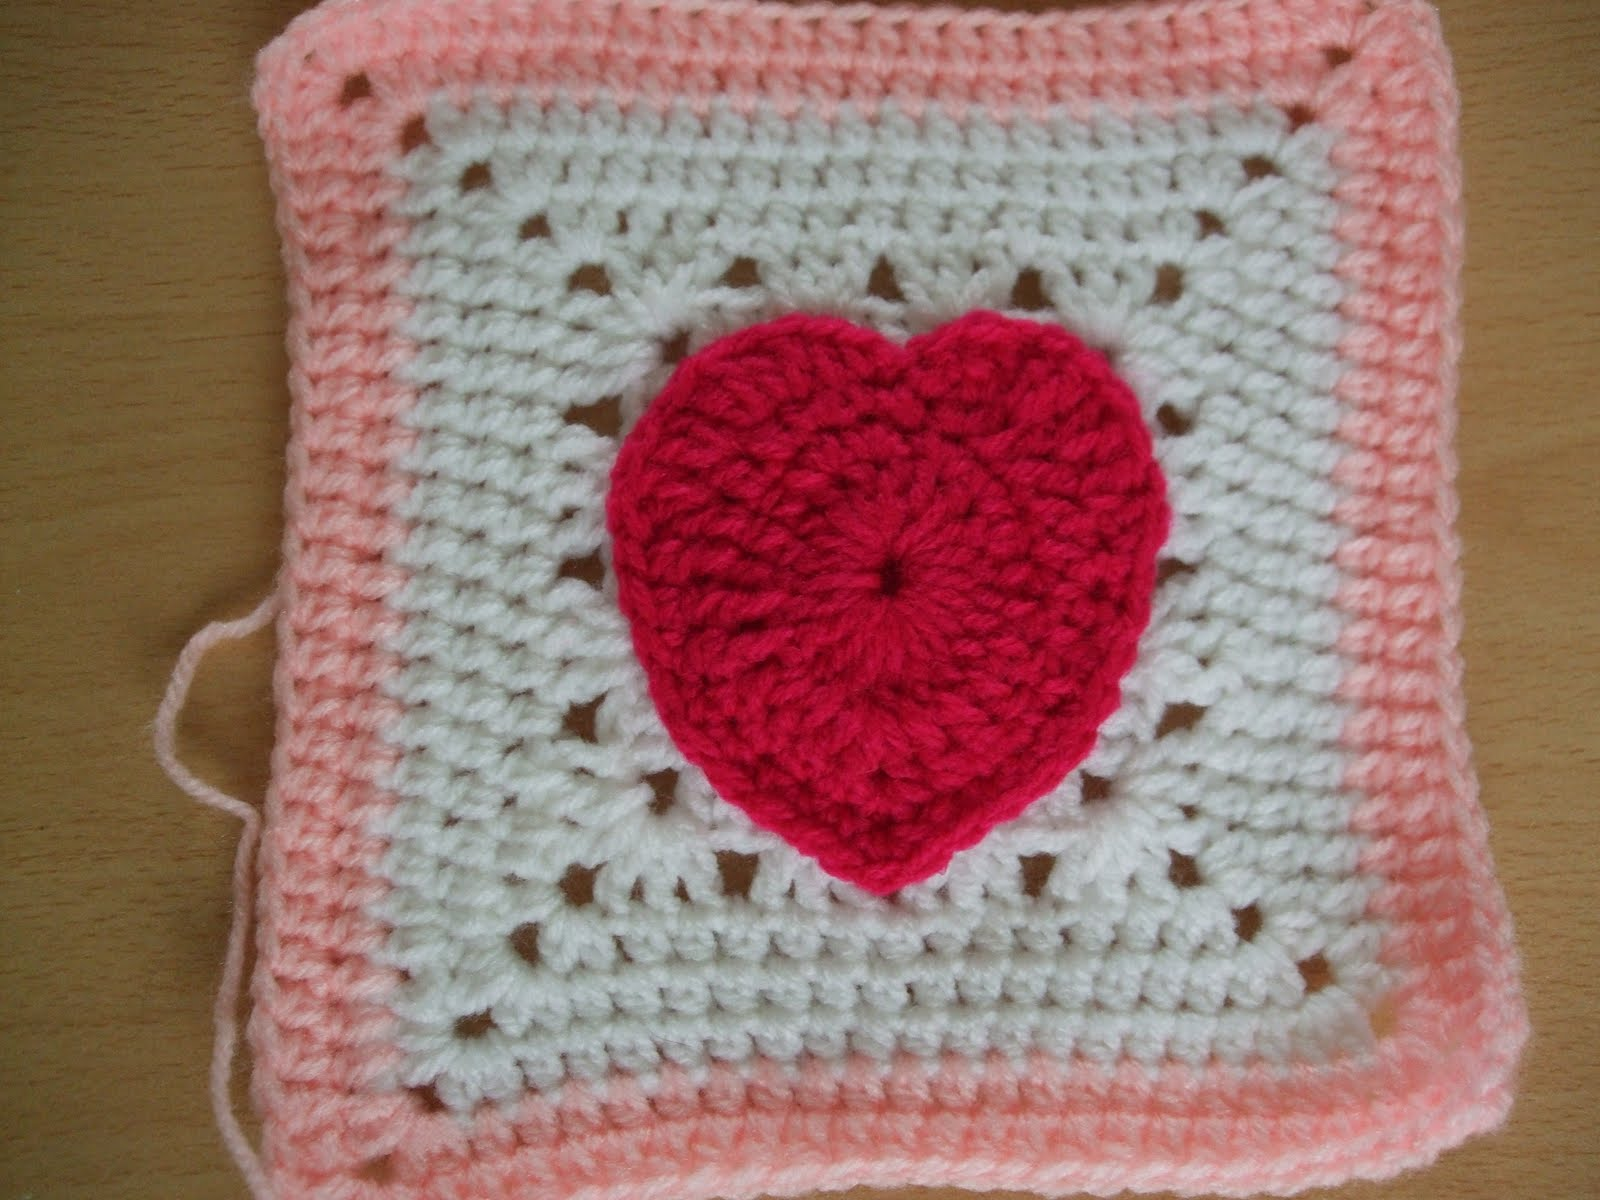 Crochet Granny Square Heart Patterns : Channelles Crochet creations: My Granny Squares